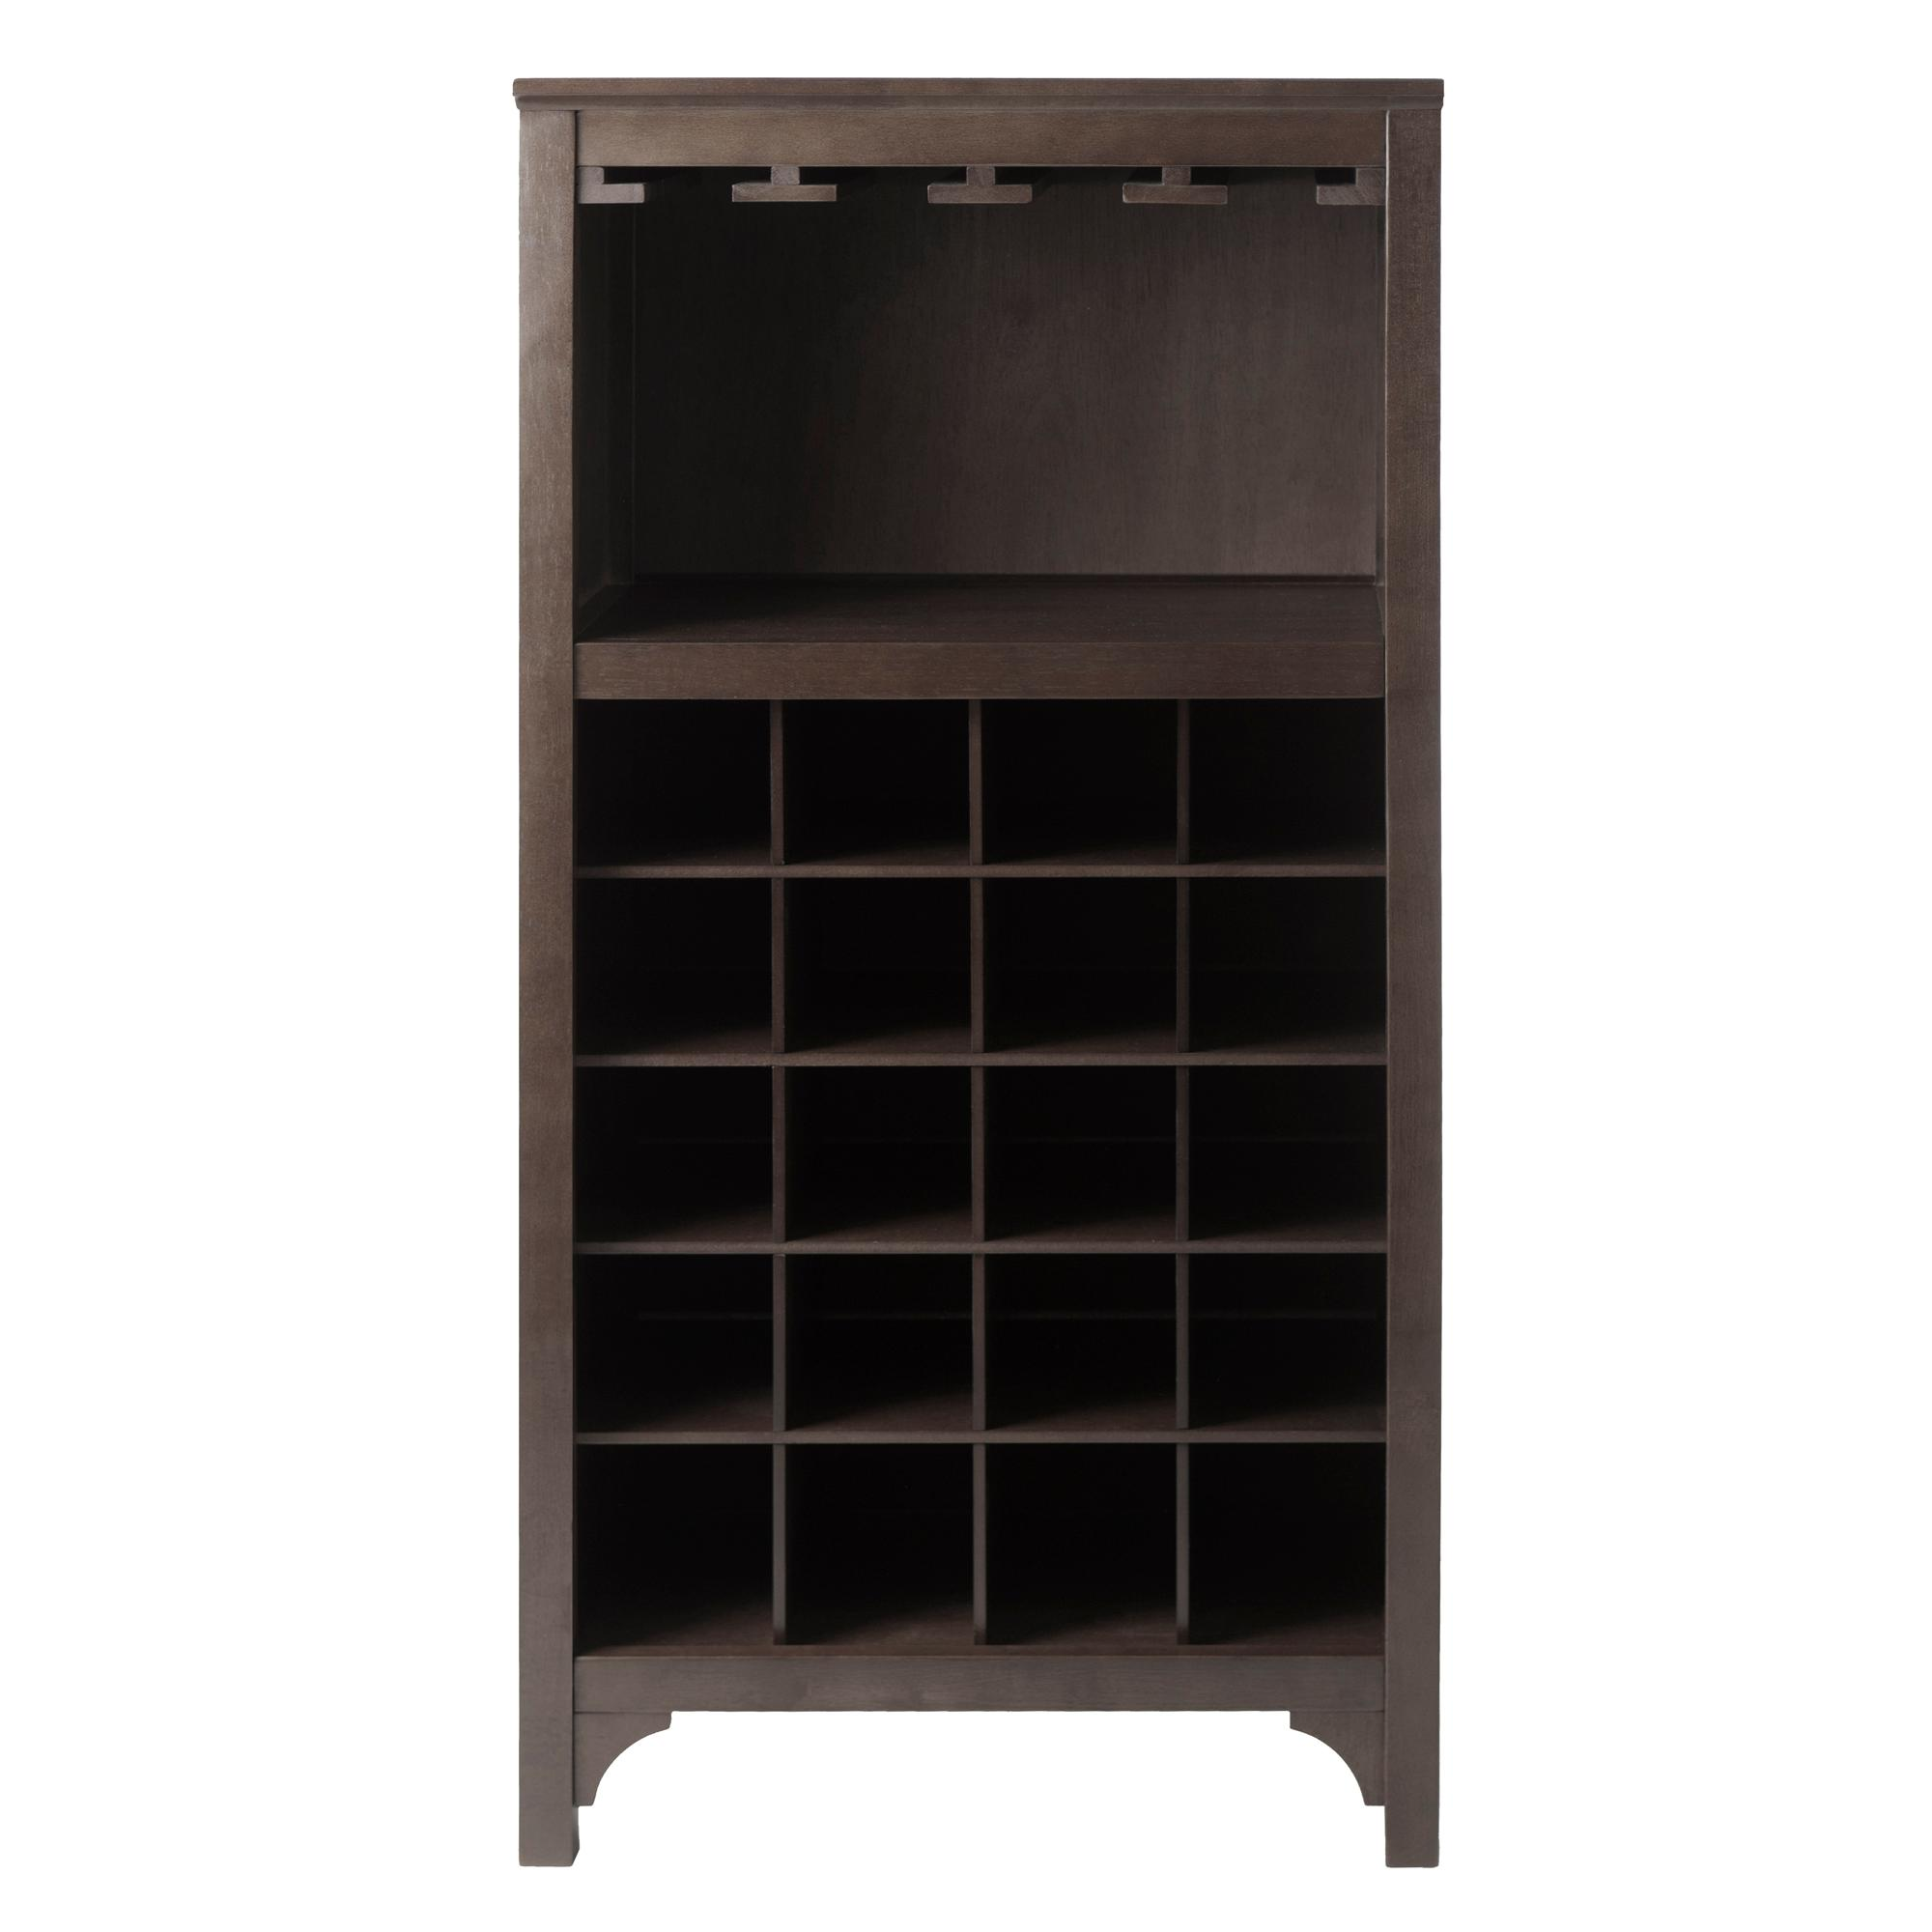 Winsome ancona wine cabinet with glass rack for 16 bottle wine cabinet with glass door espresso